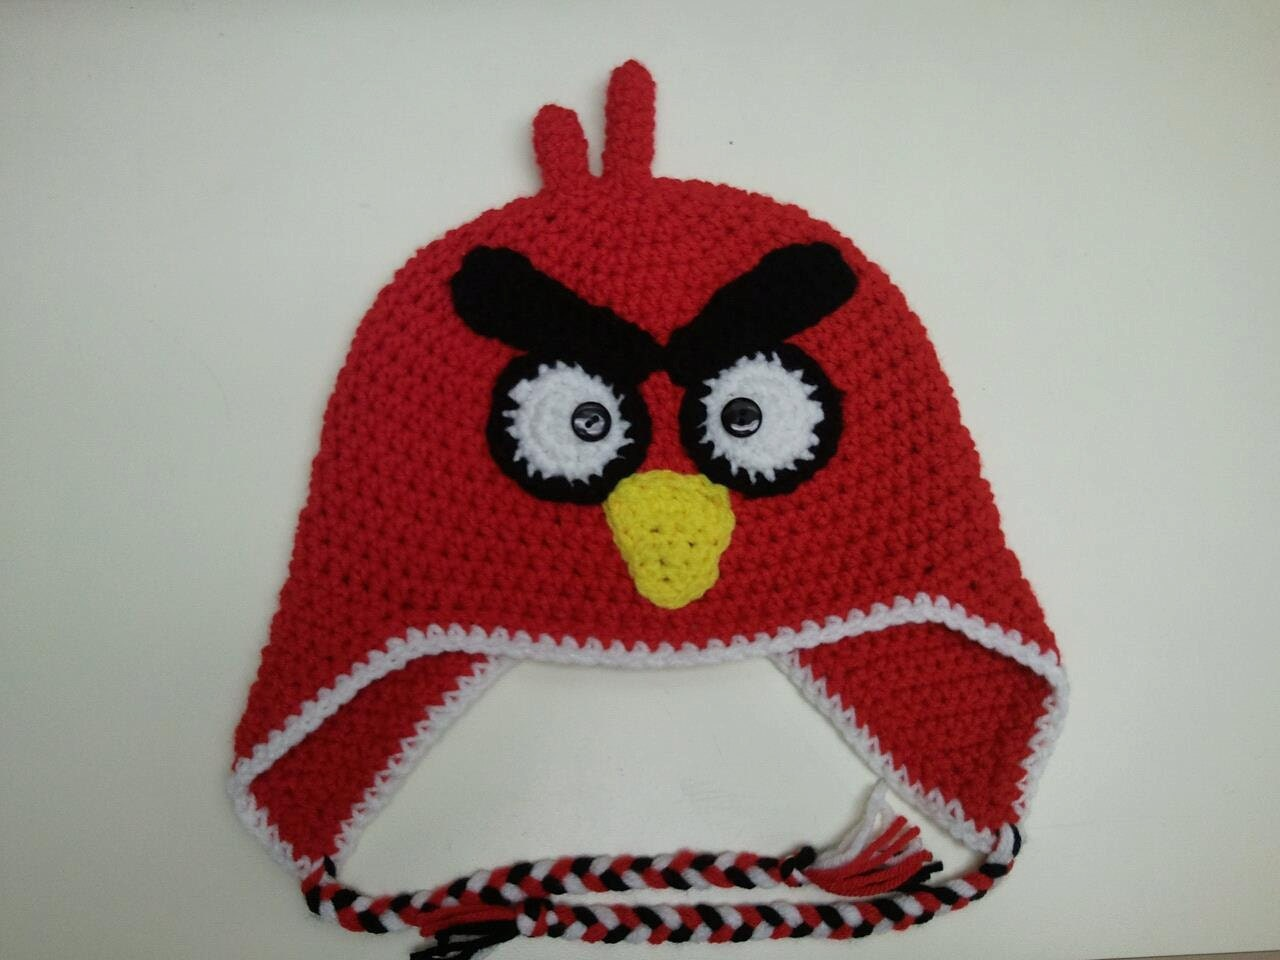 Crochet Hat Pattern Angry Bird : Items similar to Red Bird Crochet Hat (Newborn to Adult ...